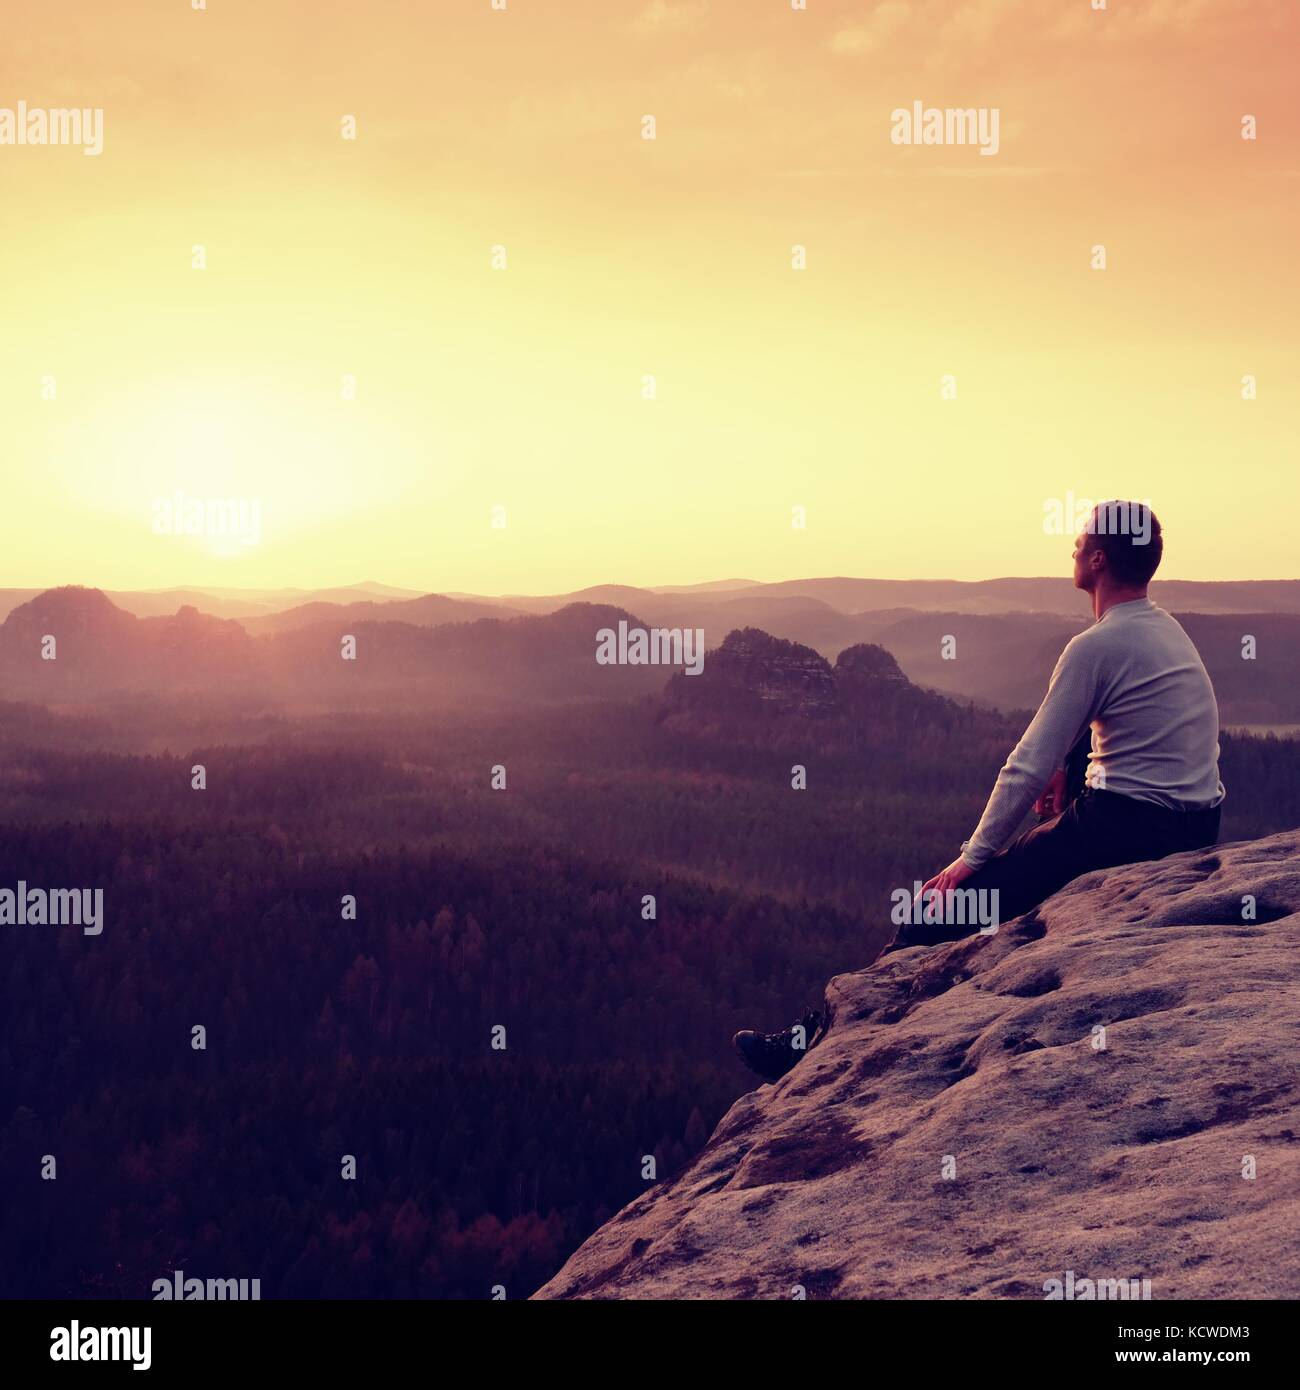 Man sit on the peak of rock and watching into colorful mist and fog in forest valley. Hiker enjoying view of morning - Stock Image